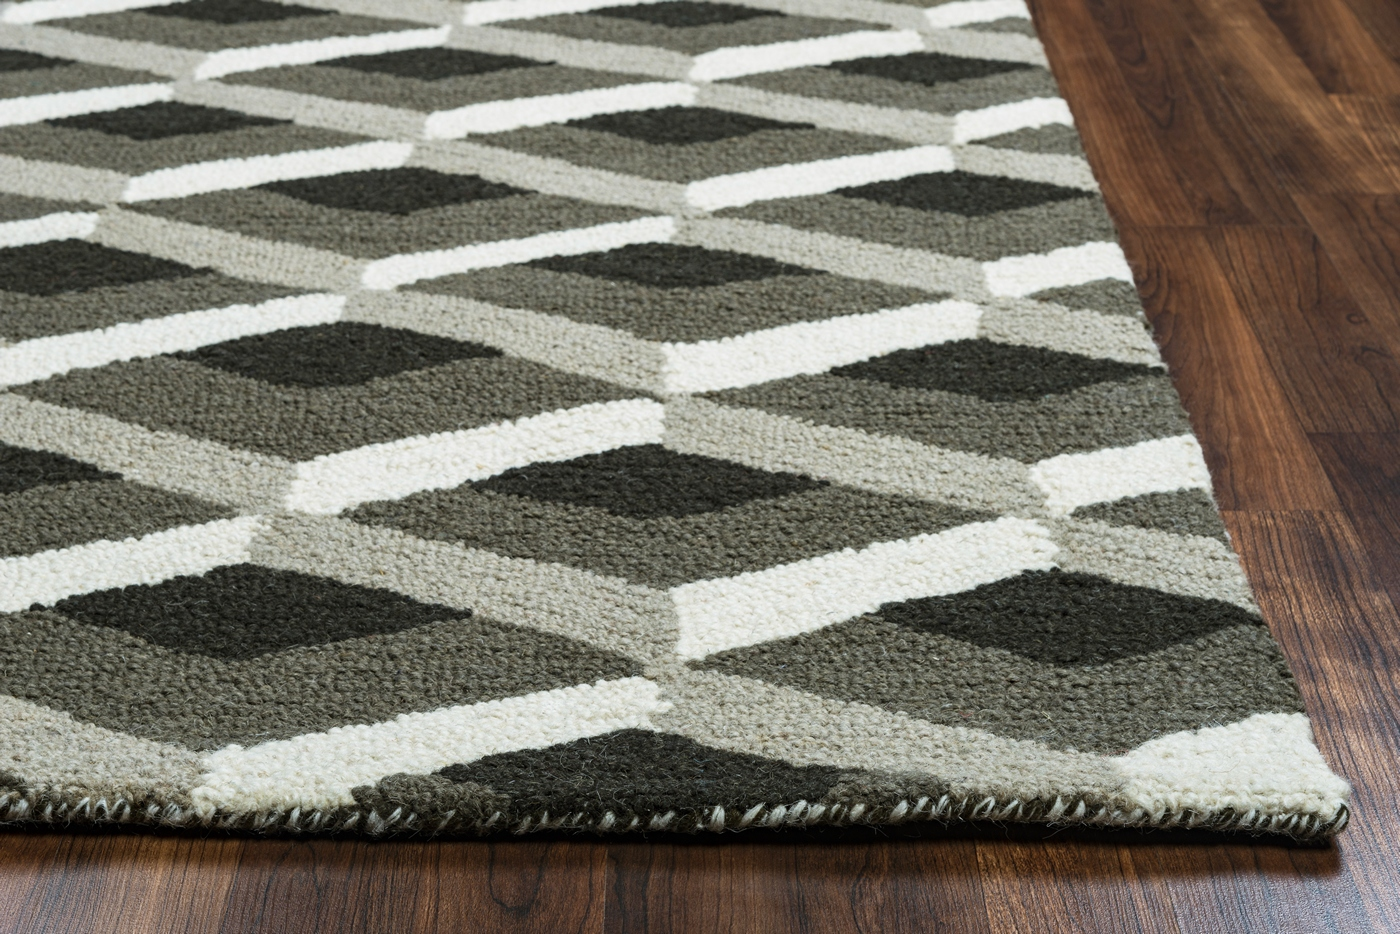 Country Geometric 3d Pattern Wool Area Rug In Grey Amp Black